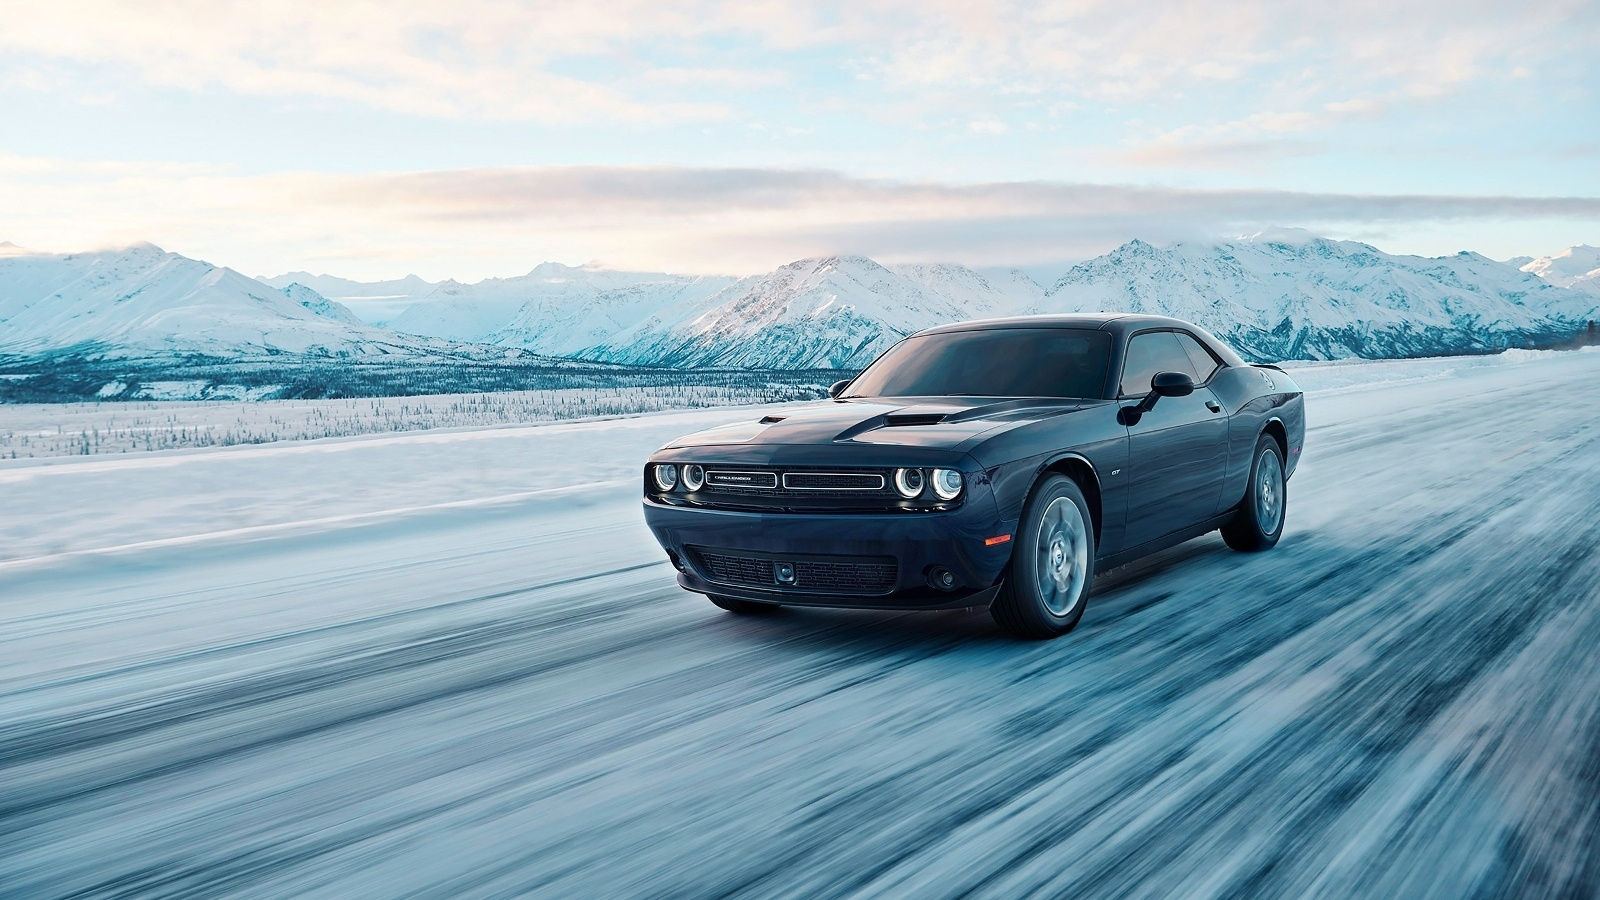 dodge challenger gt awd 2017 wallpapers 1600x900 476690. Black Bedroom Furniture Sets. Home Design Ideas